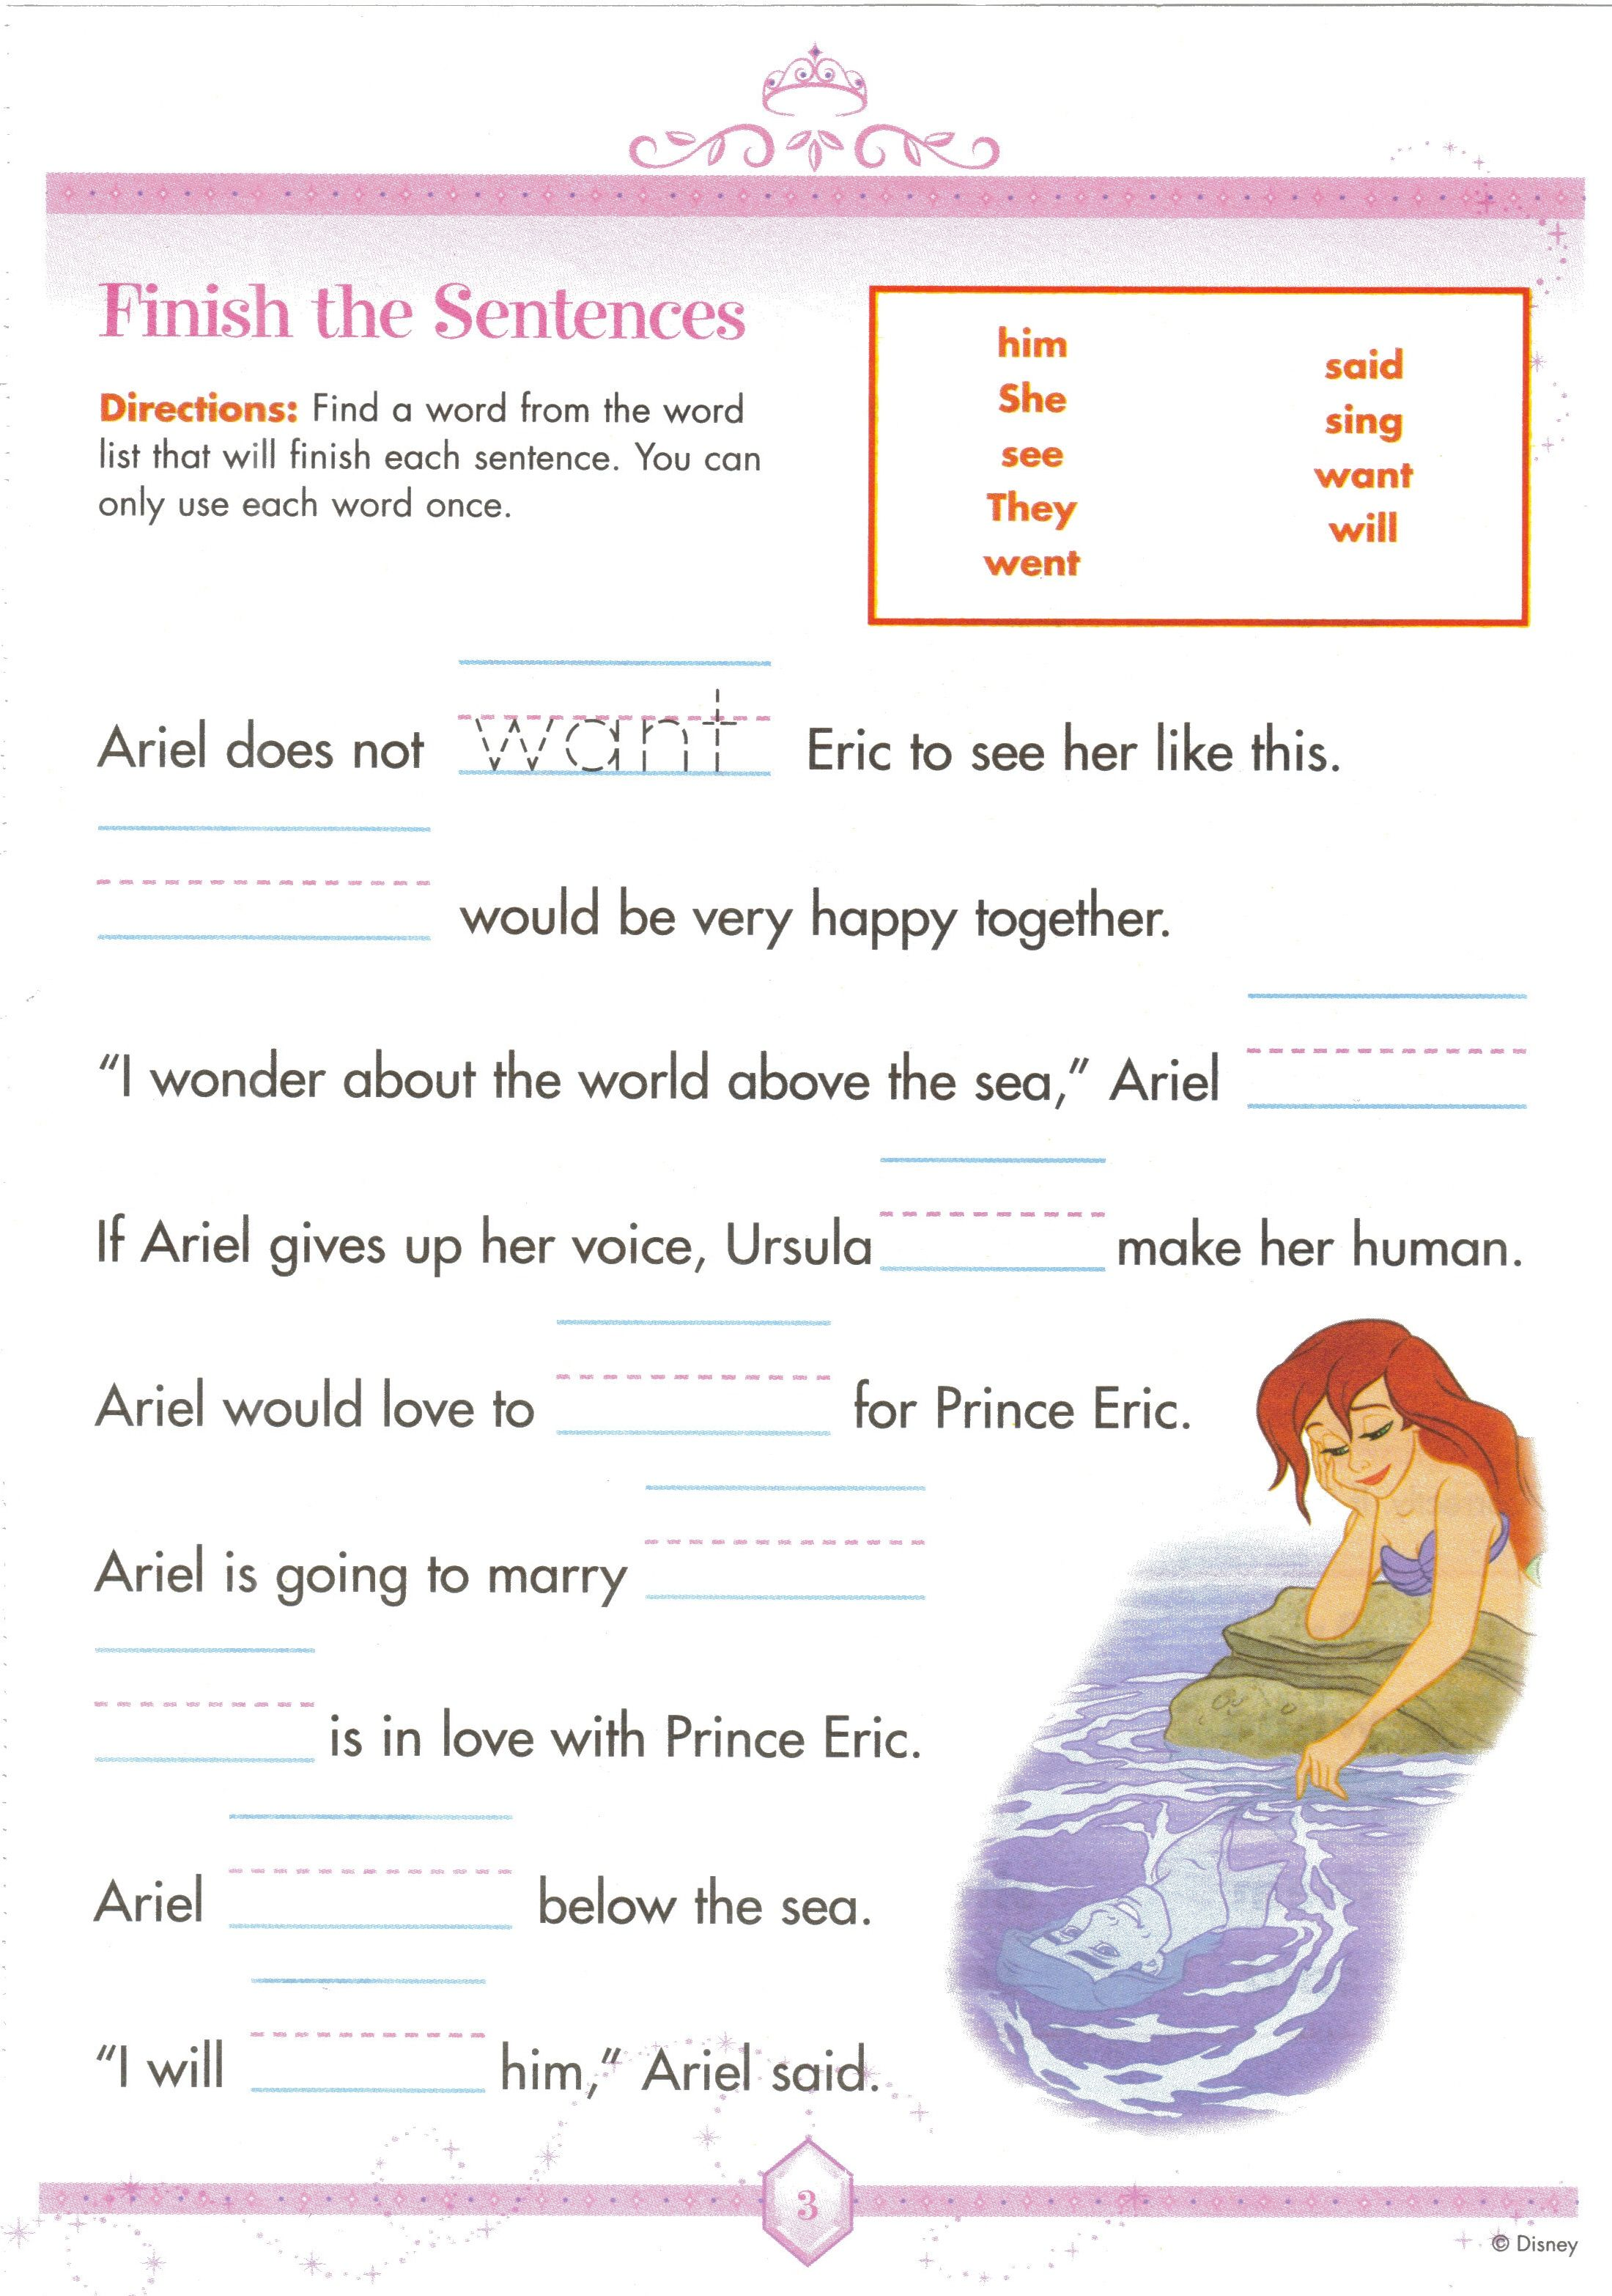 Aldiablosus  Winning  Images About Worksheets On Pinterest  Fun Facts For Kids  With Heavenly  Images About Worksheets On Pinterest  Fun Facts For Kids Earth Day Worksheets And Jungles With Beautiful Magnetism Worksheet Answers Also Decimal Place Value Worksheets In Addition Prefix Worksheets And Ethos Pathos Logos Worksheet As Well As Wedding Budget Worksheet Additionally Elements And Compounds Worksheet Answers From Pinterestcom With Aldiablosus  Heavenly  Images About Worksheets On Pinterest  Fun Facts For Kids  With Beautiful  Images About Worksheets On Pinterest  Fun Facts For Kids Earth Day Worksheets And Jungles And Winning Magnetism Worksheet Answers Also Decimal Place Value Worksheets In Addition Prefix Worksheets From Pinterestcom